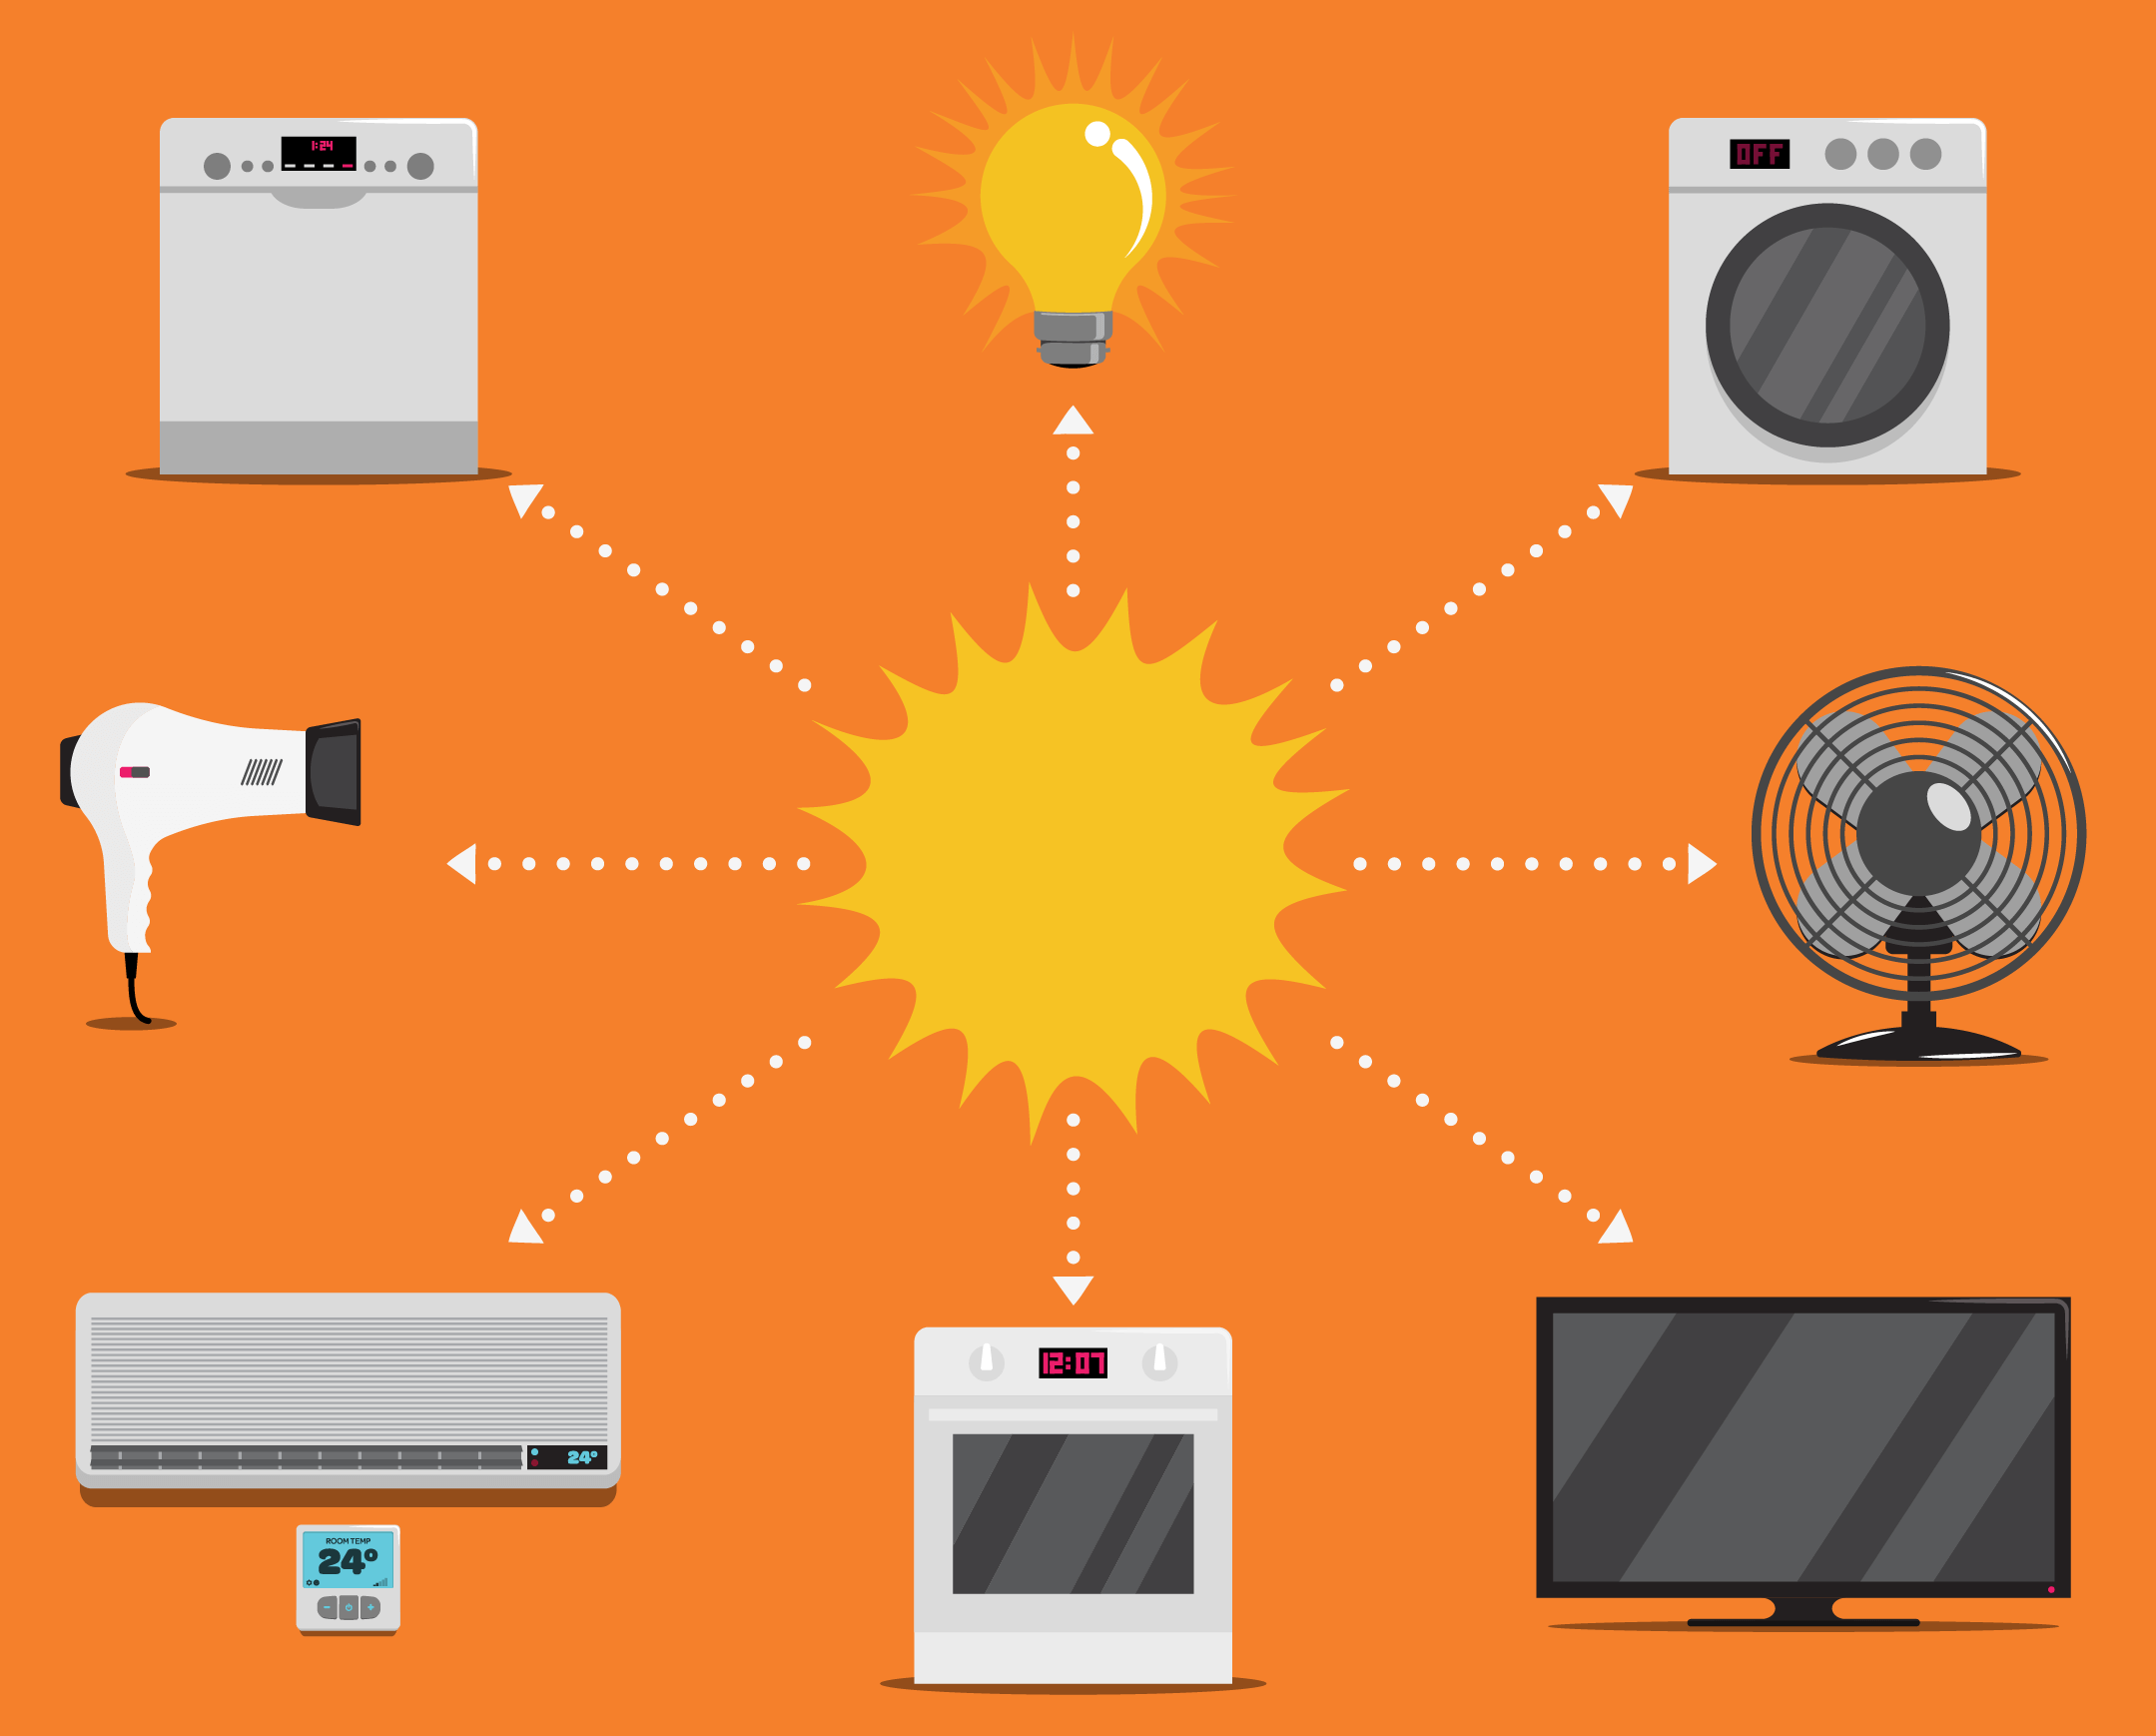 Illustration of household appliances that can be powered with solar energy